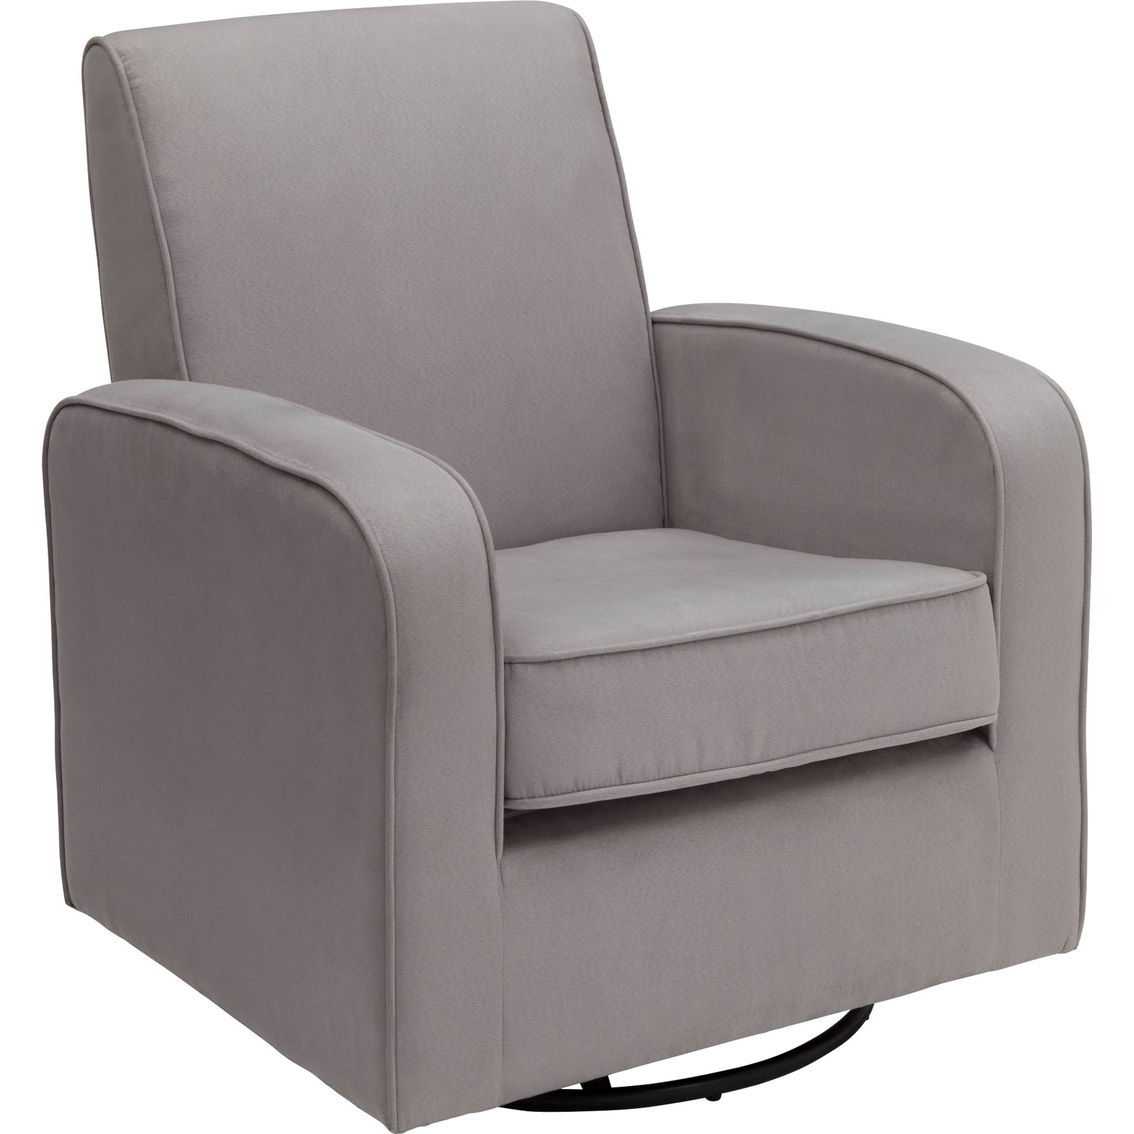 Delta Children Chair Delta Children Chloe Nursery Glider Swivel Rocker Chair Rockers